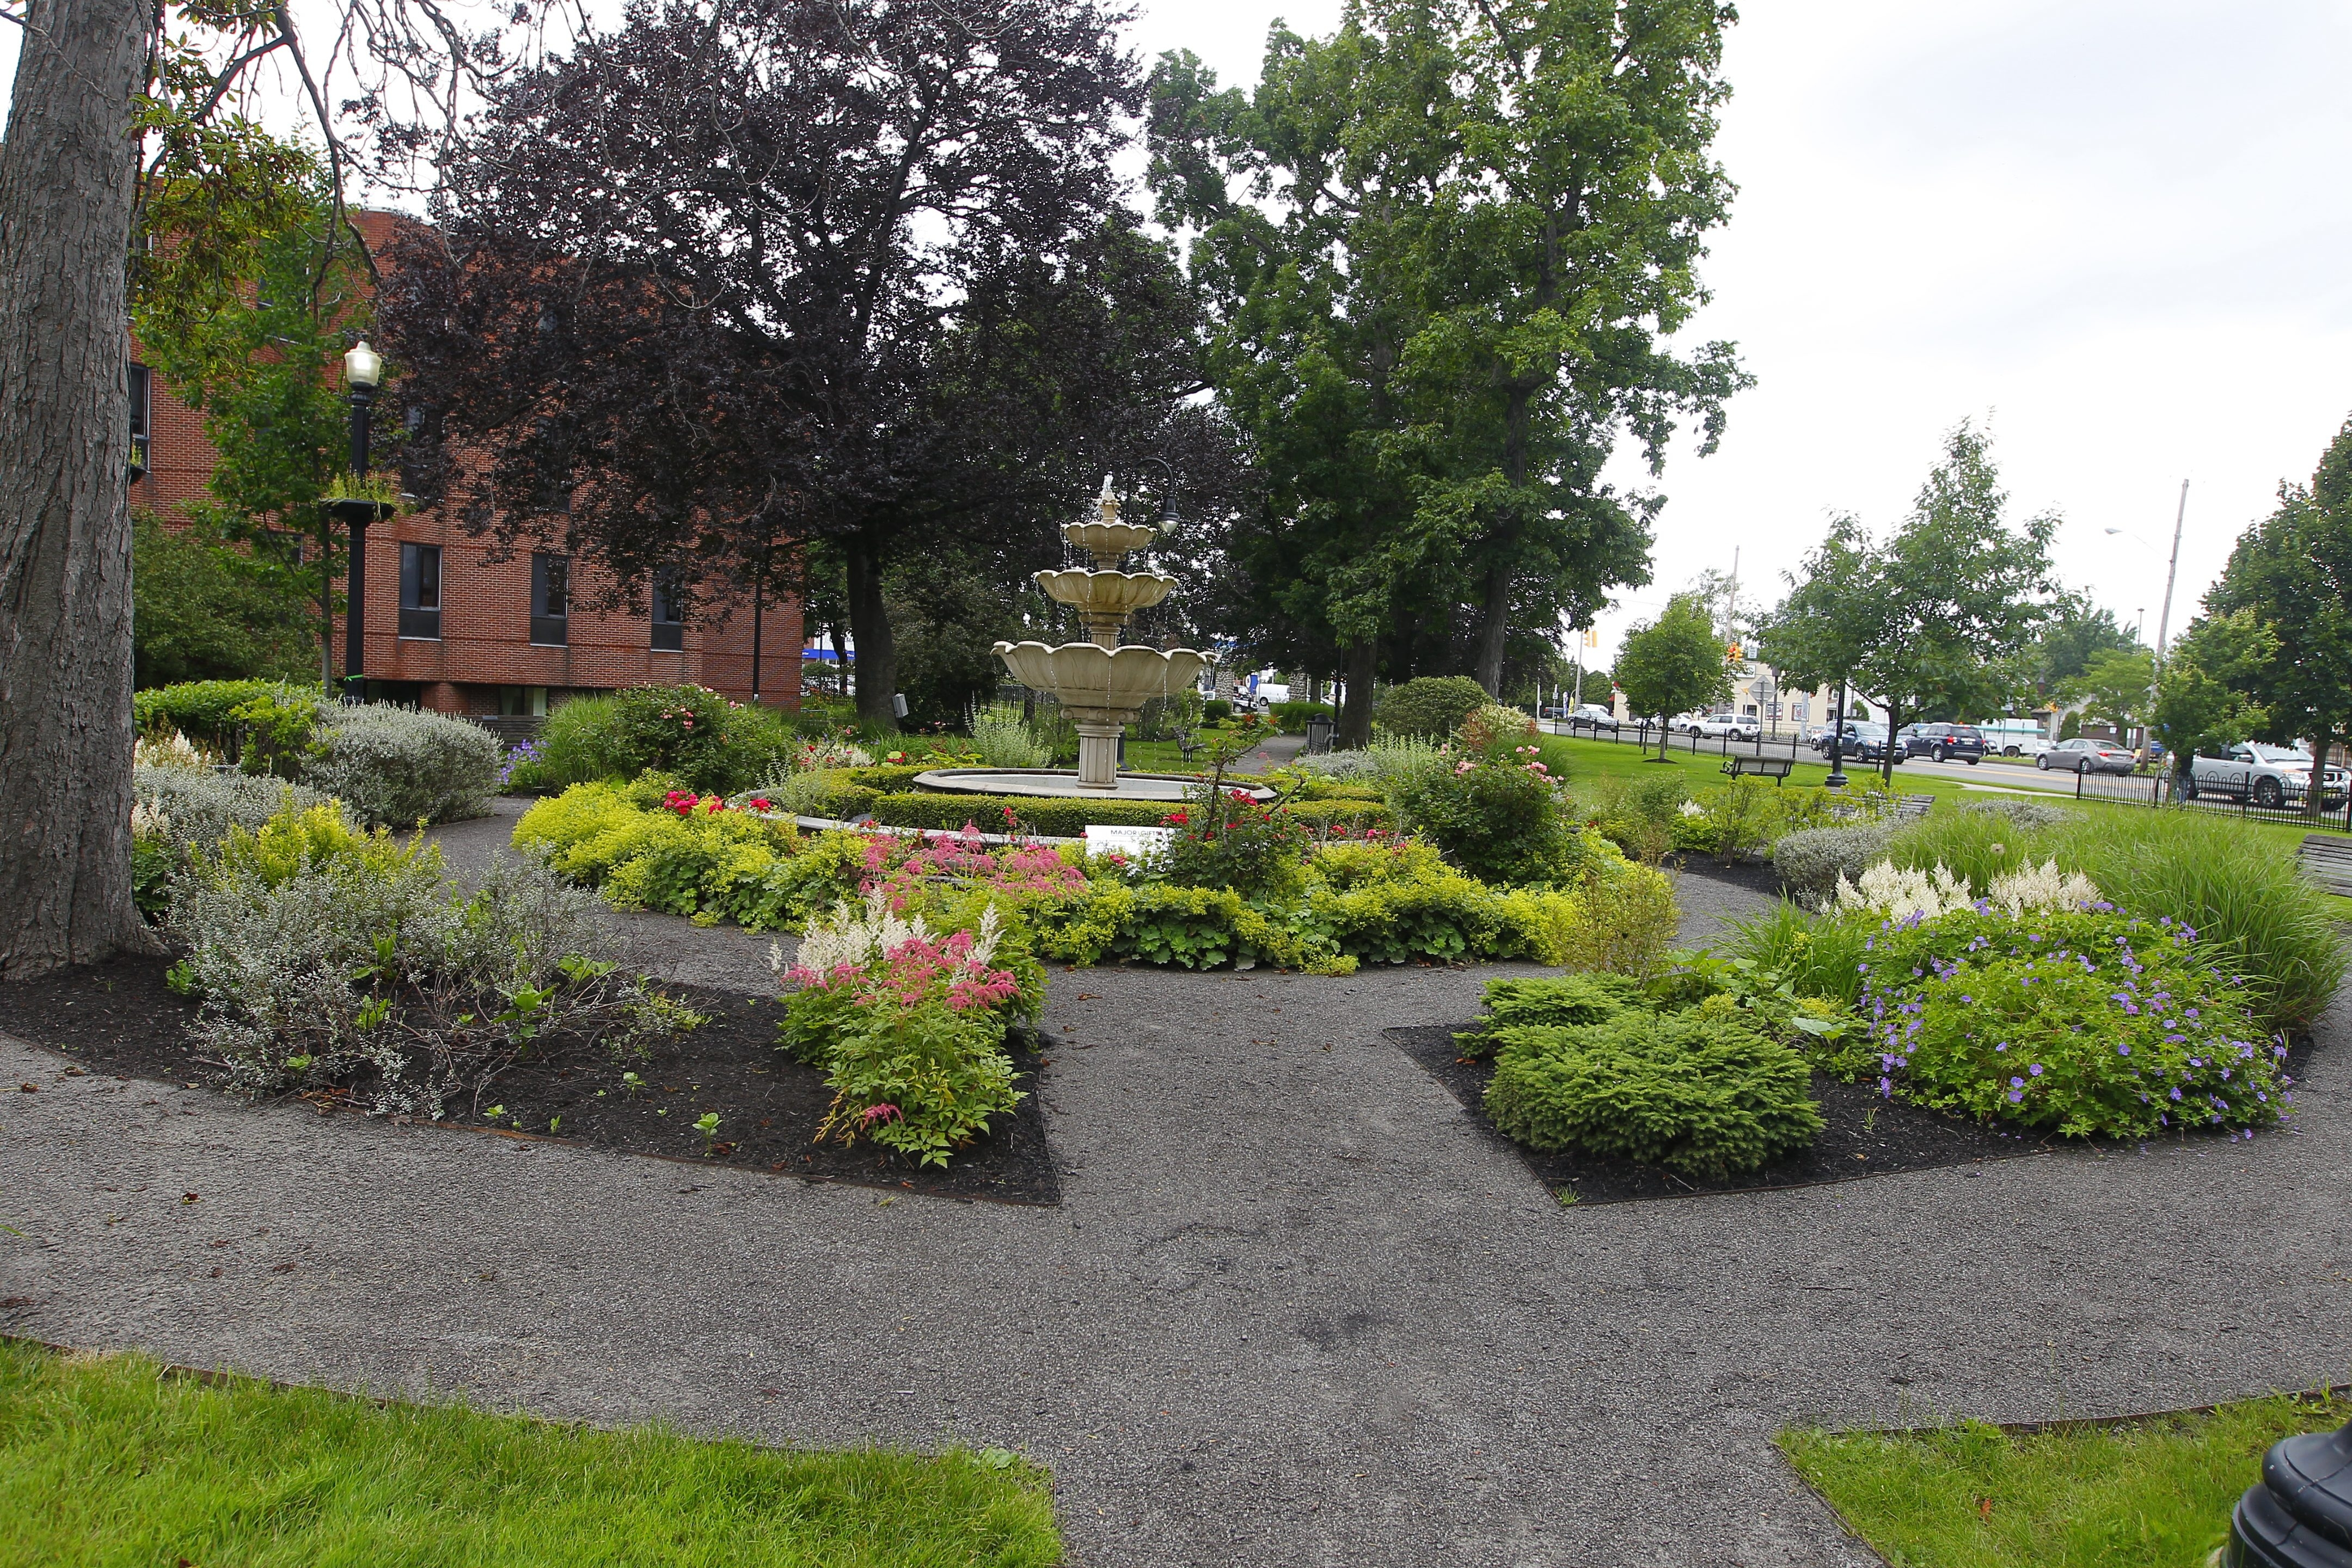 The gardens at Schoellkopf Park, on Portage Road between Pine and Walnut avenues, which were restored about seven years ago. Landscape architect Joy Kuebler will lead tours of the park Saturday.